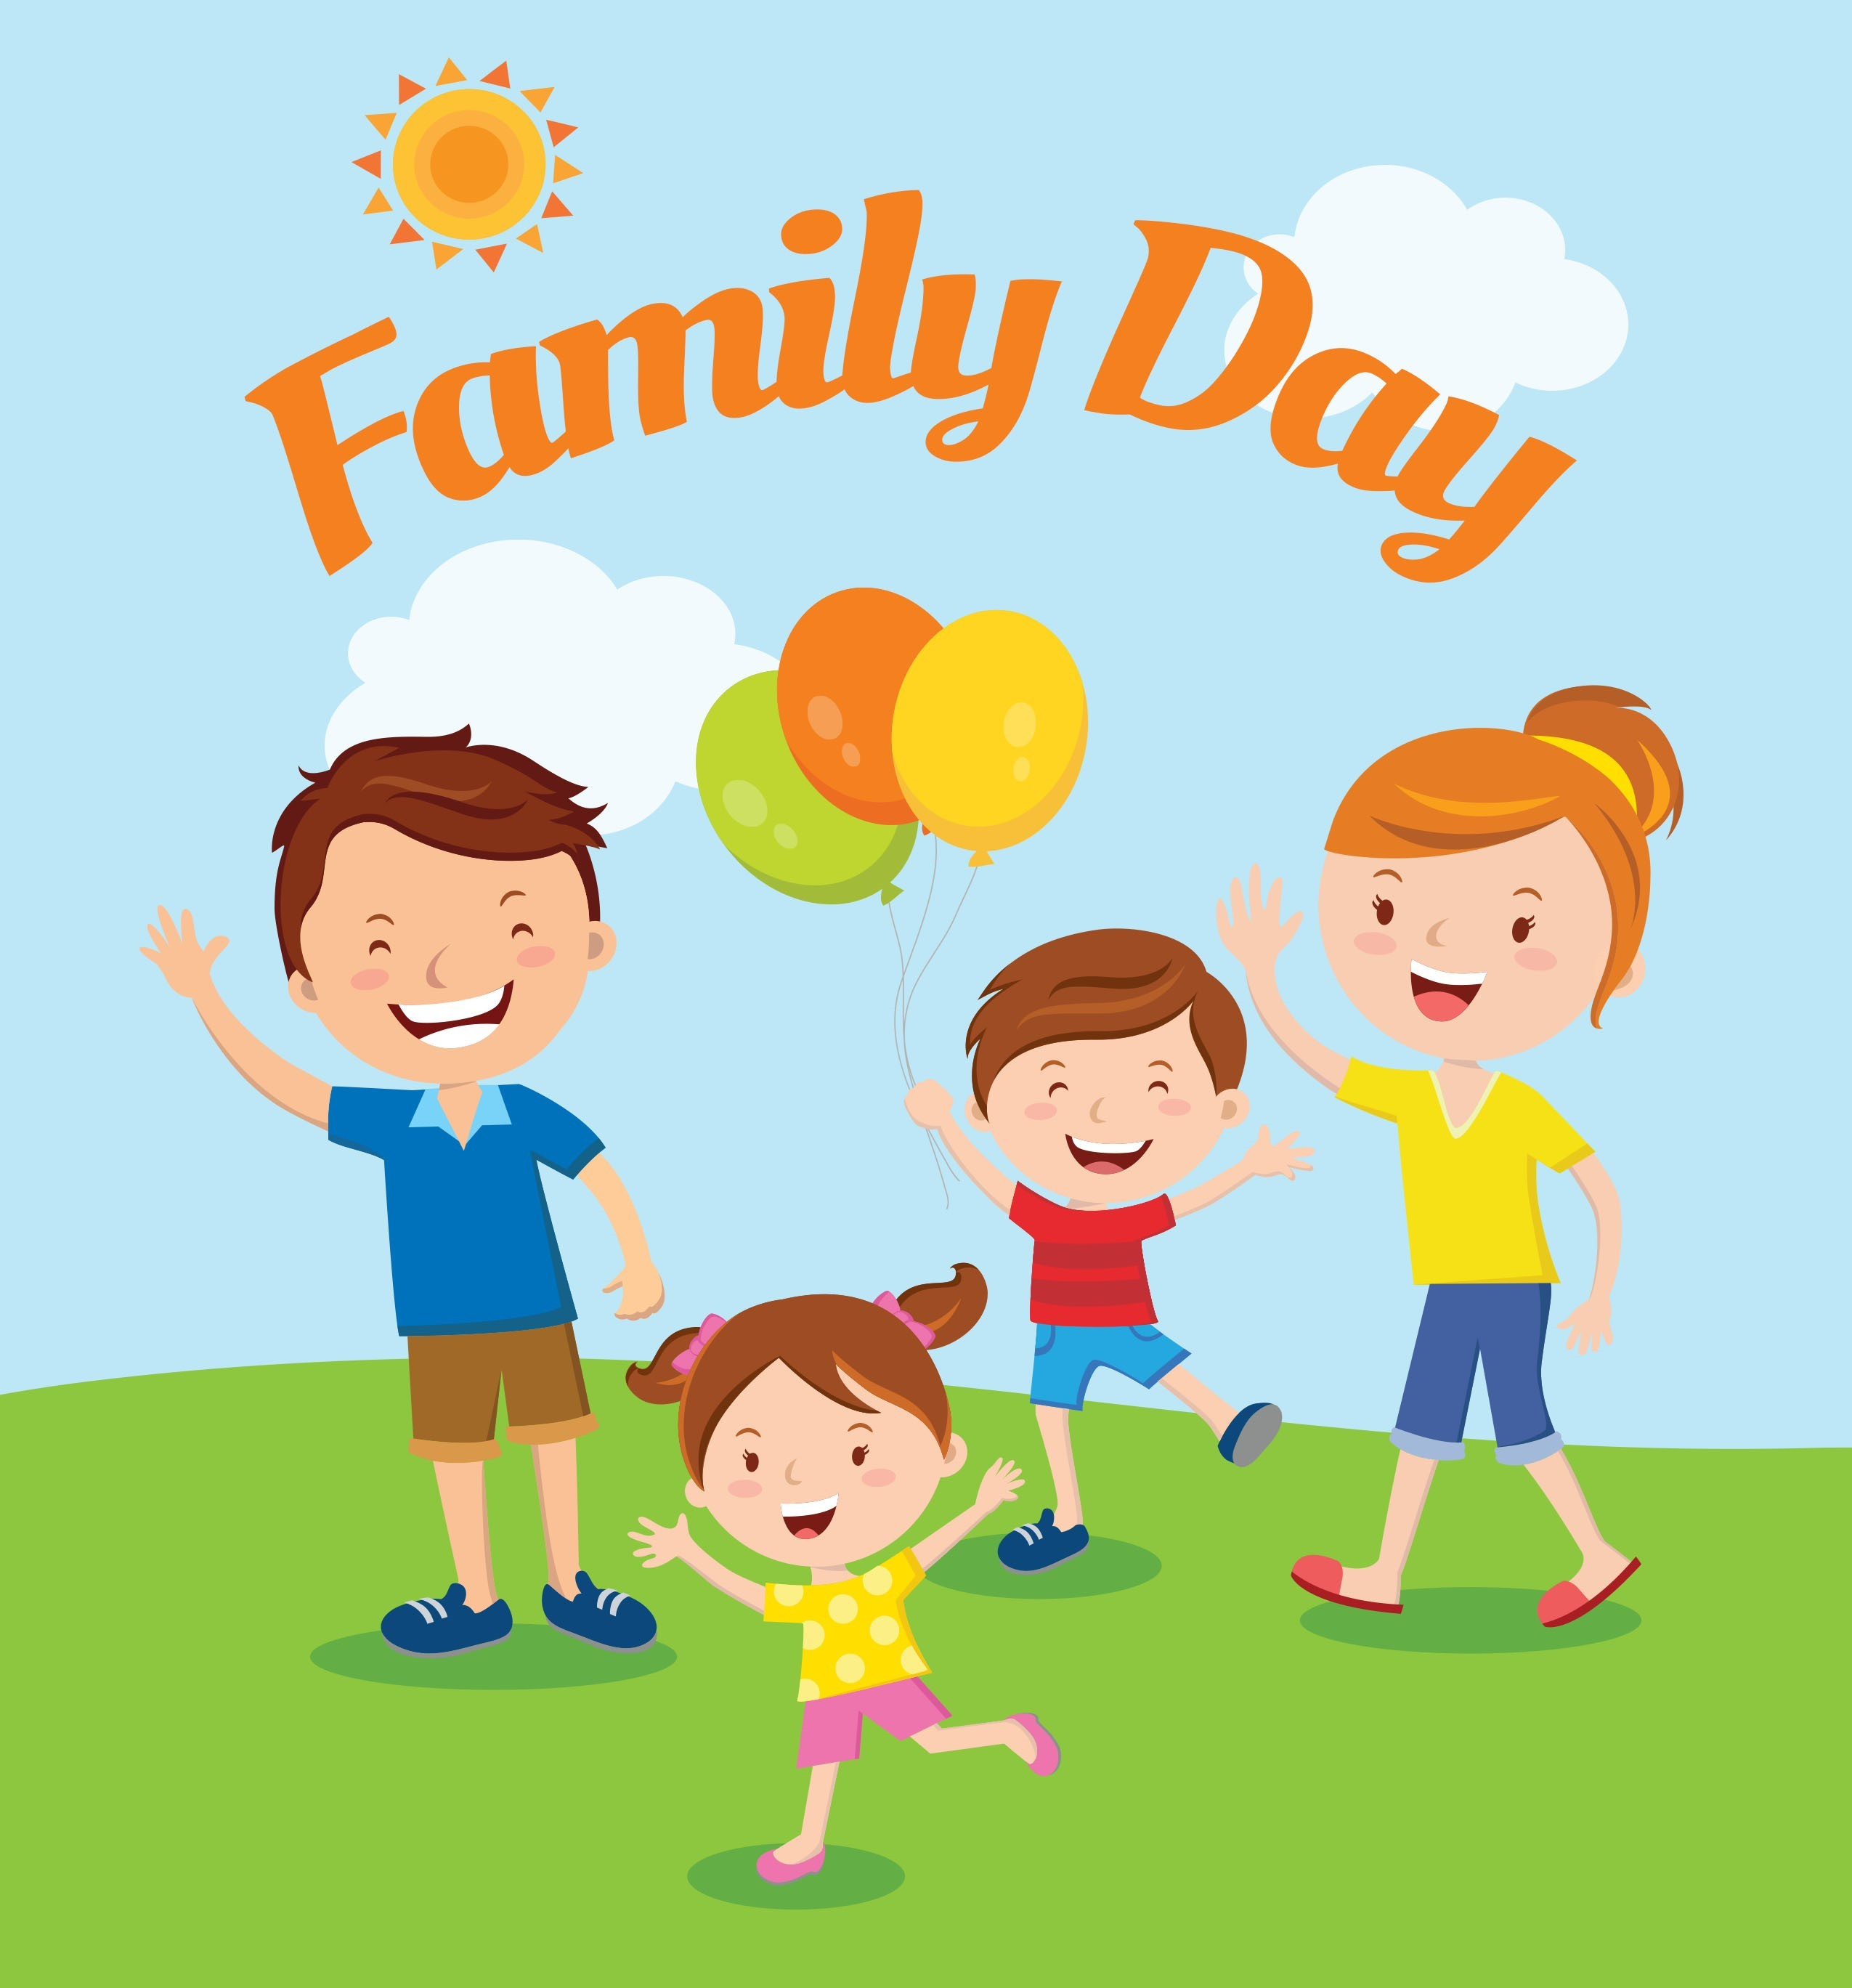 Family day 2017 clipart - Family days enero 2017 ...